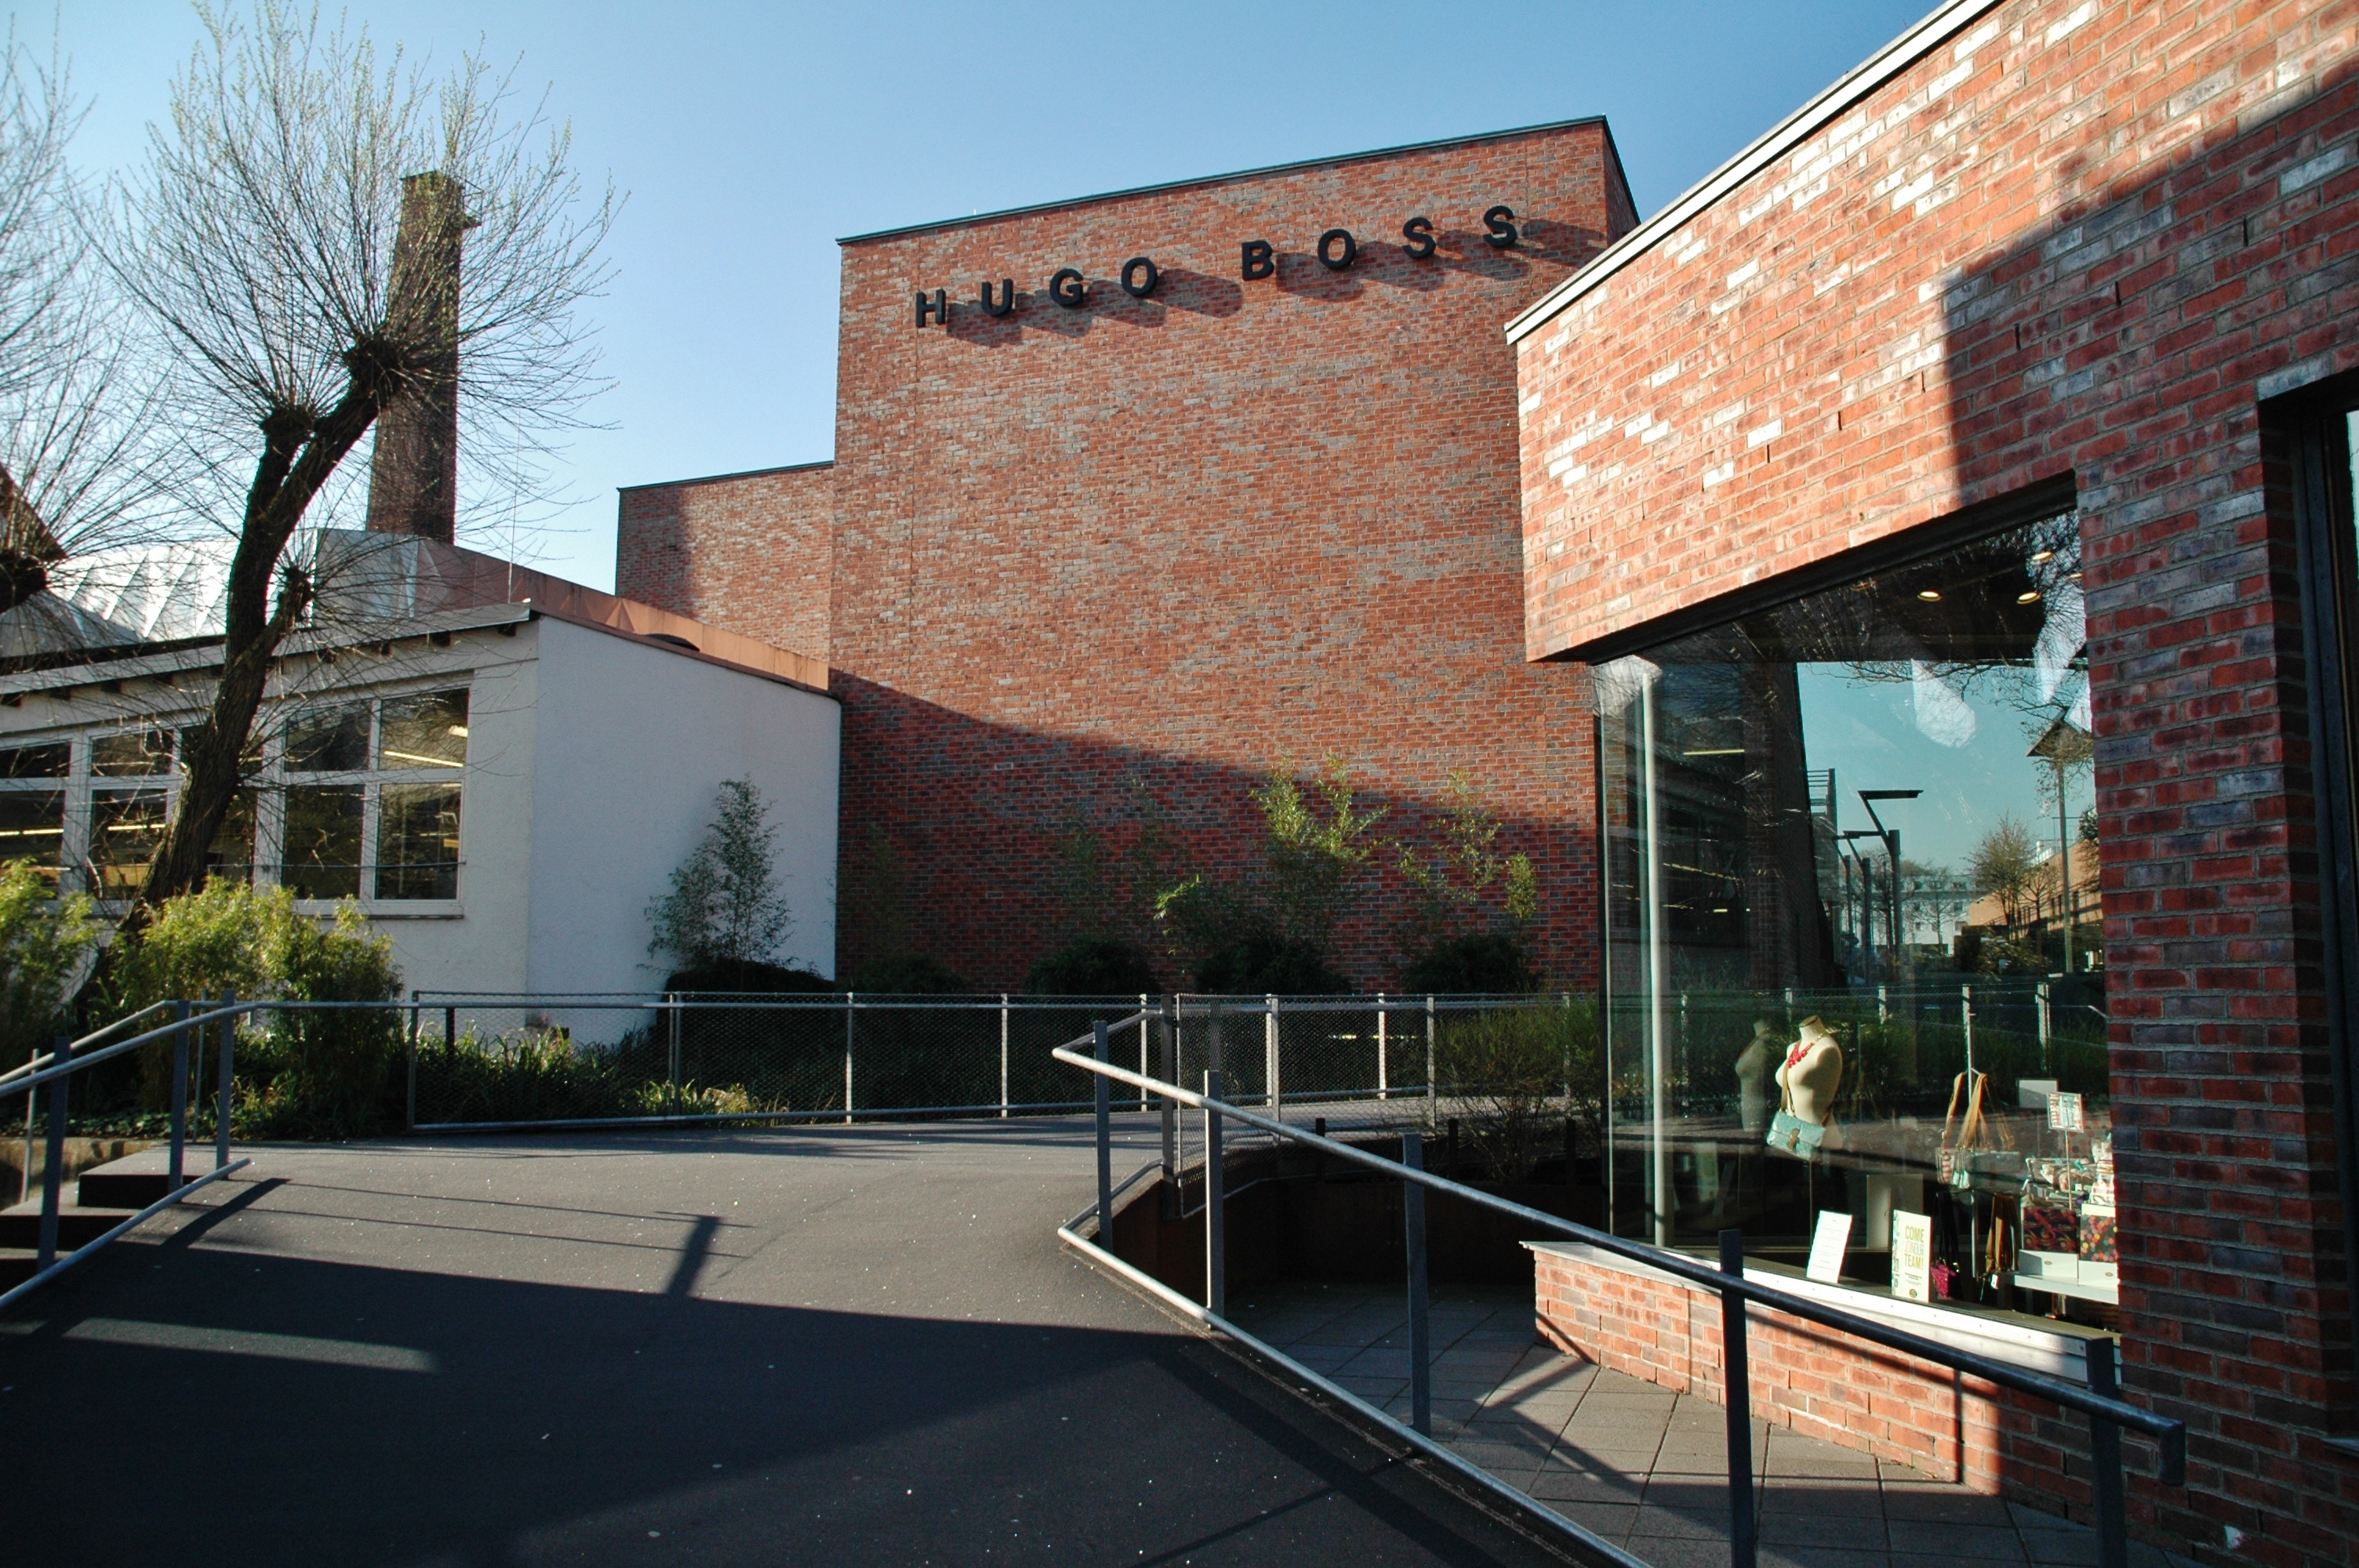 831111811 File:HUGO BOSS Outlet Store in der Outlet City in Metzingen - panoramio.jpg